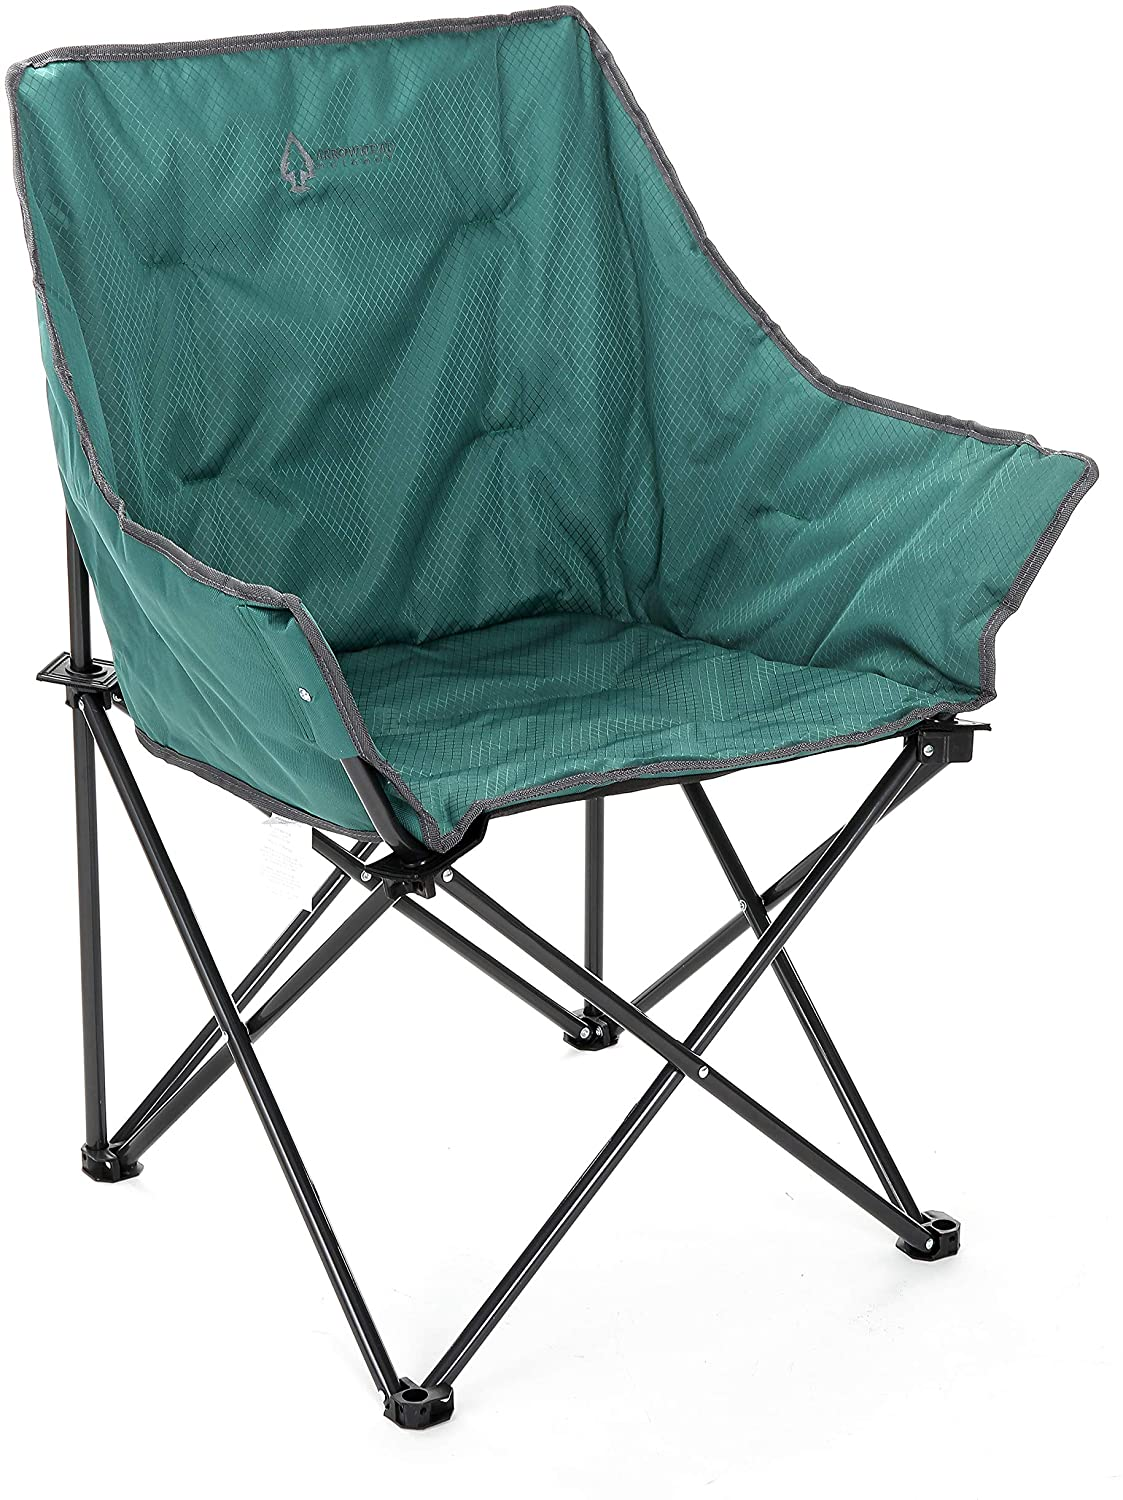 Compact Heavy-Duty Steel Frame Arrowhead Outdoor Portable Folding Camping Quad Bucket Chair Supports up to 250lbs